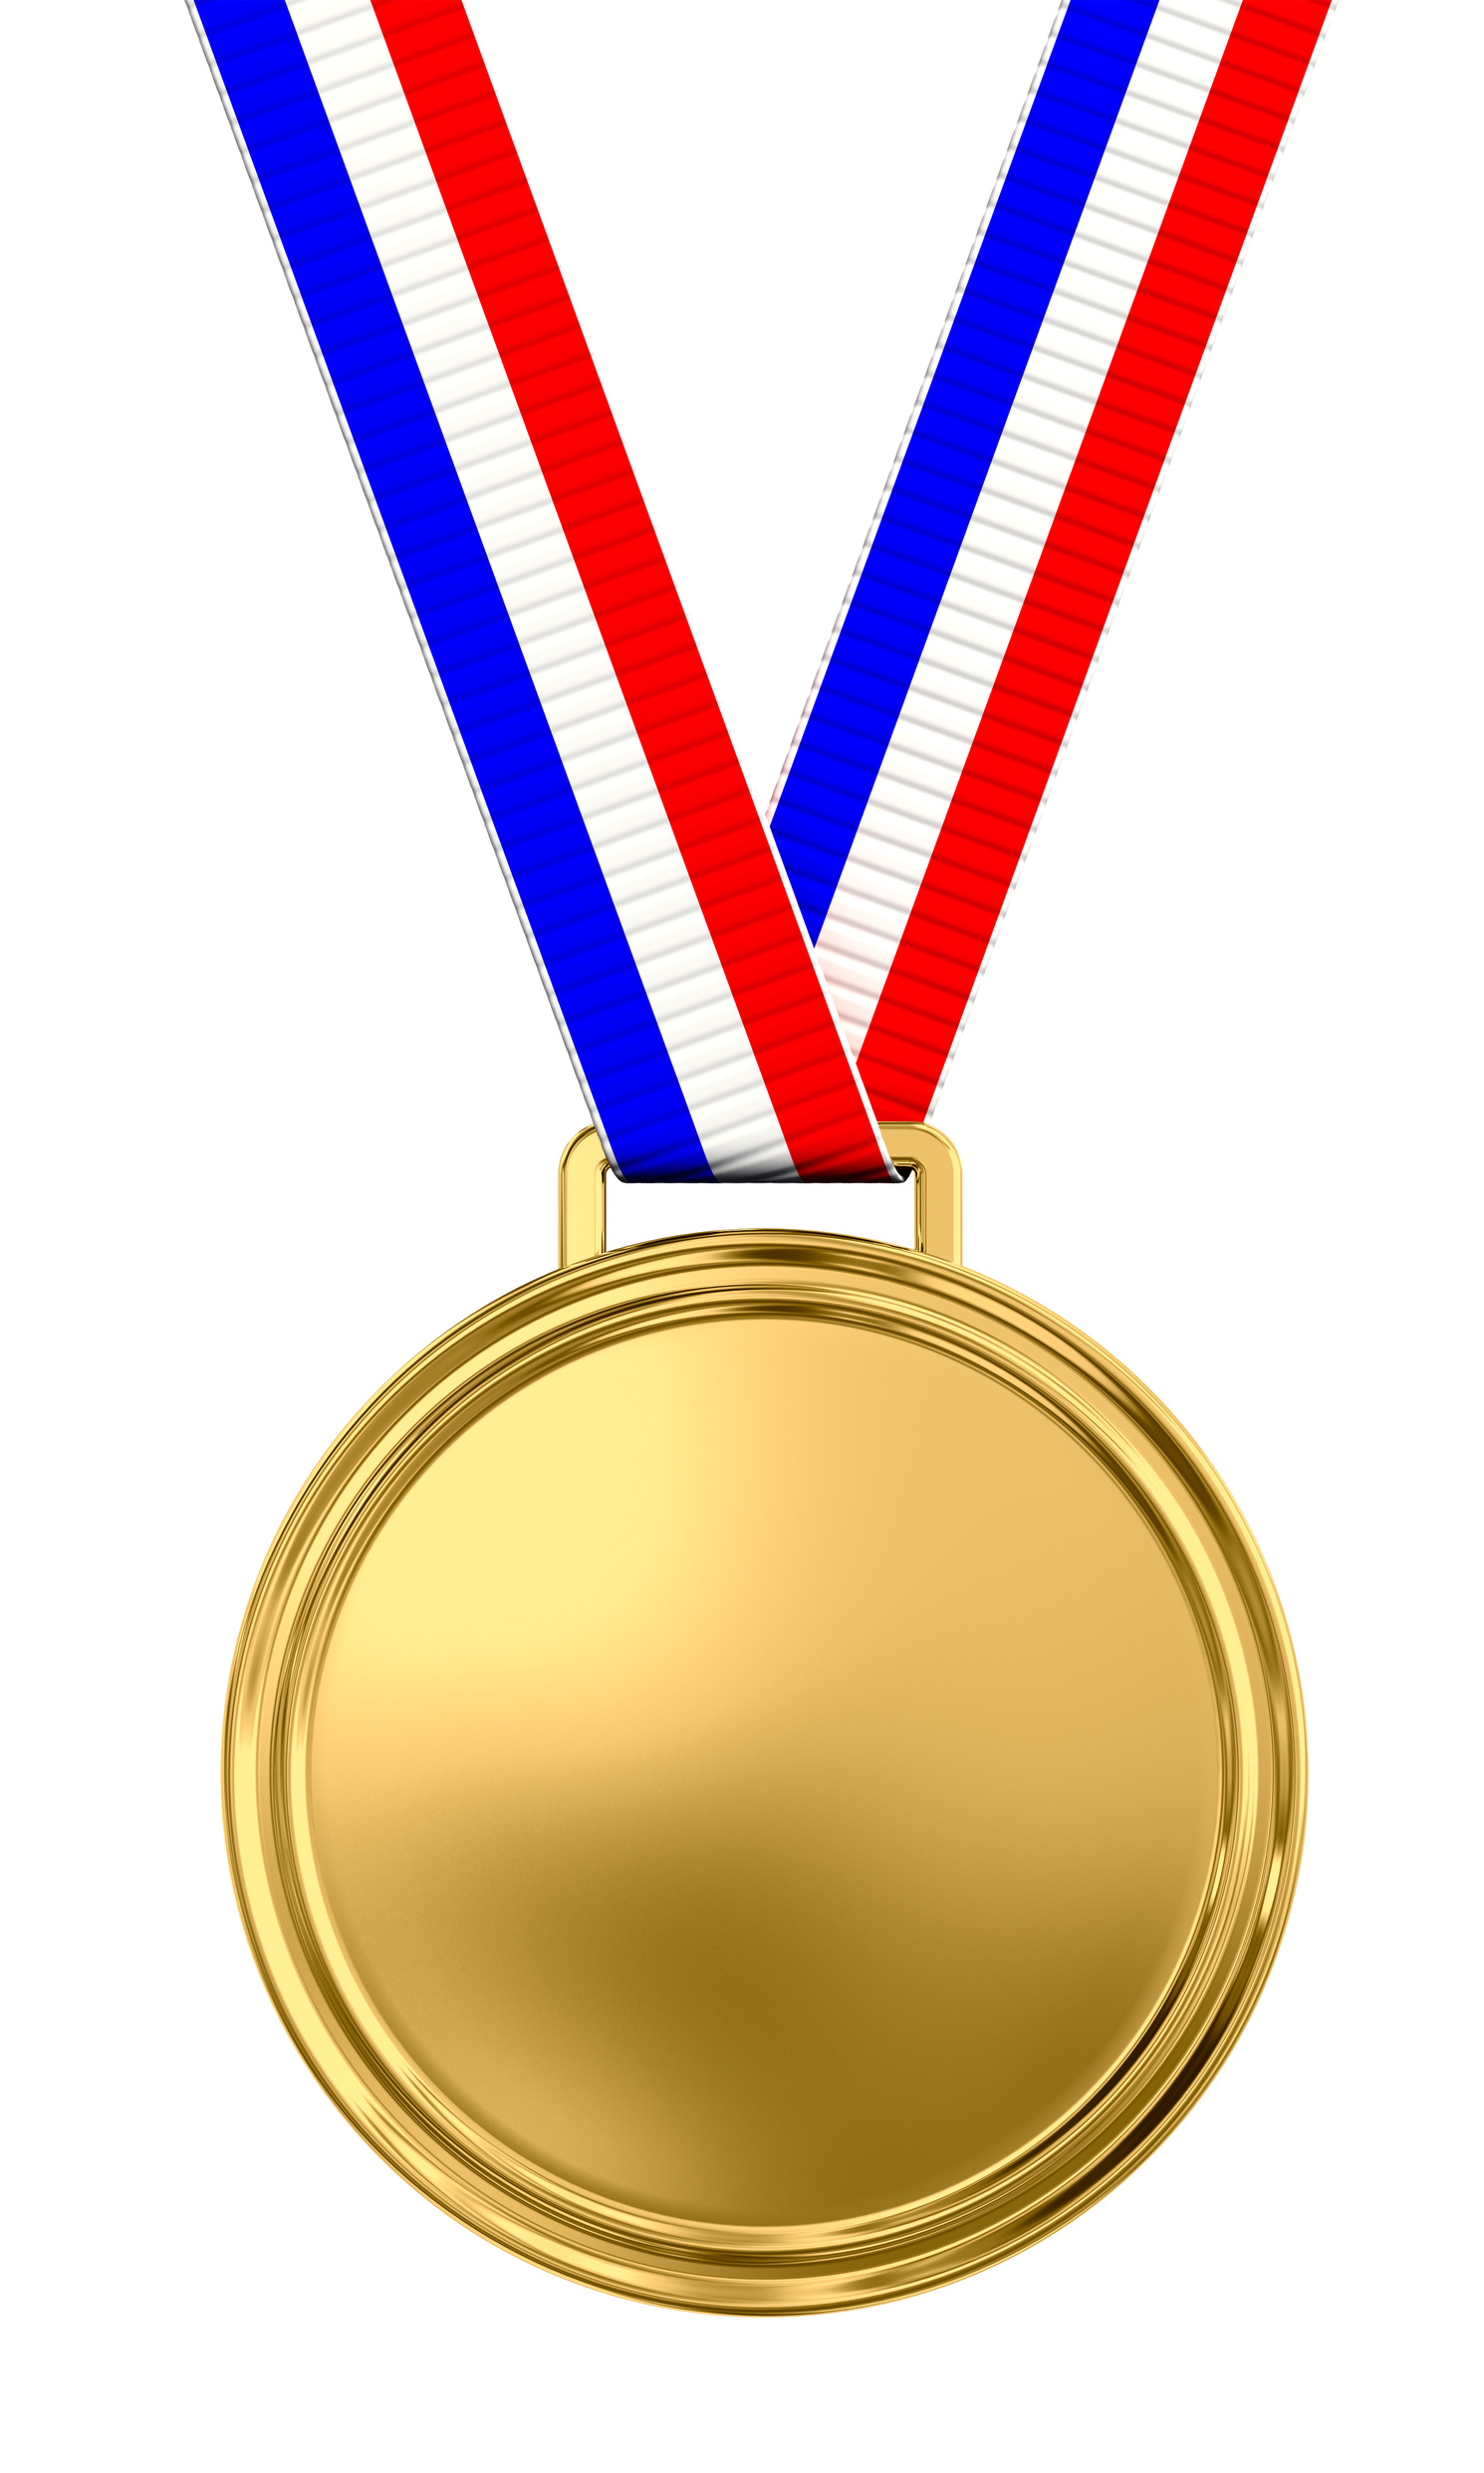 Gold . Medal clipart